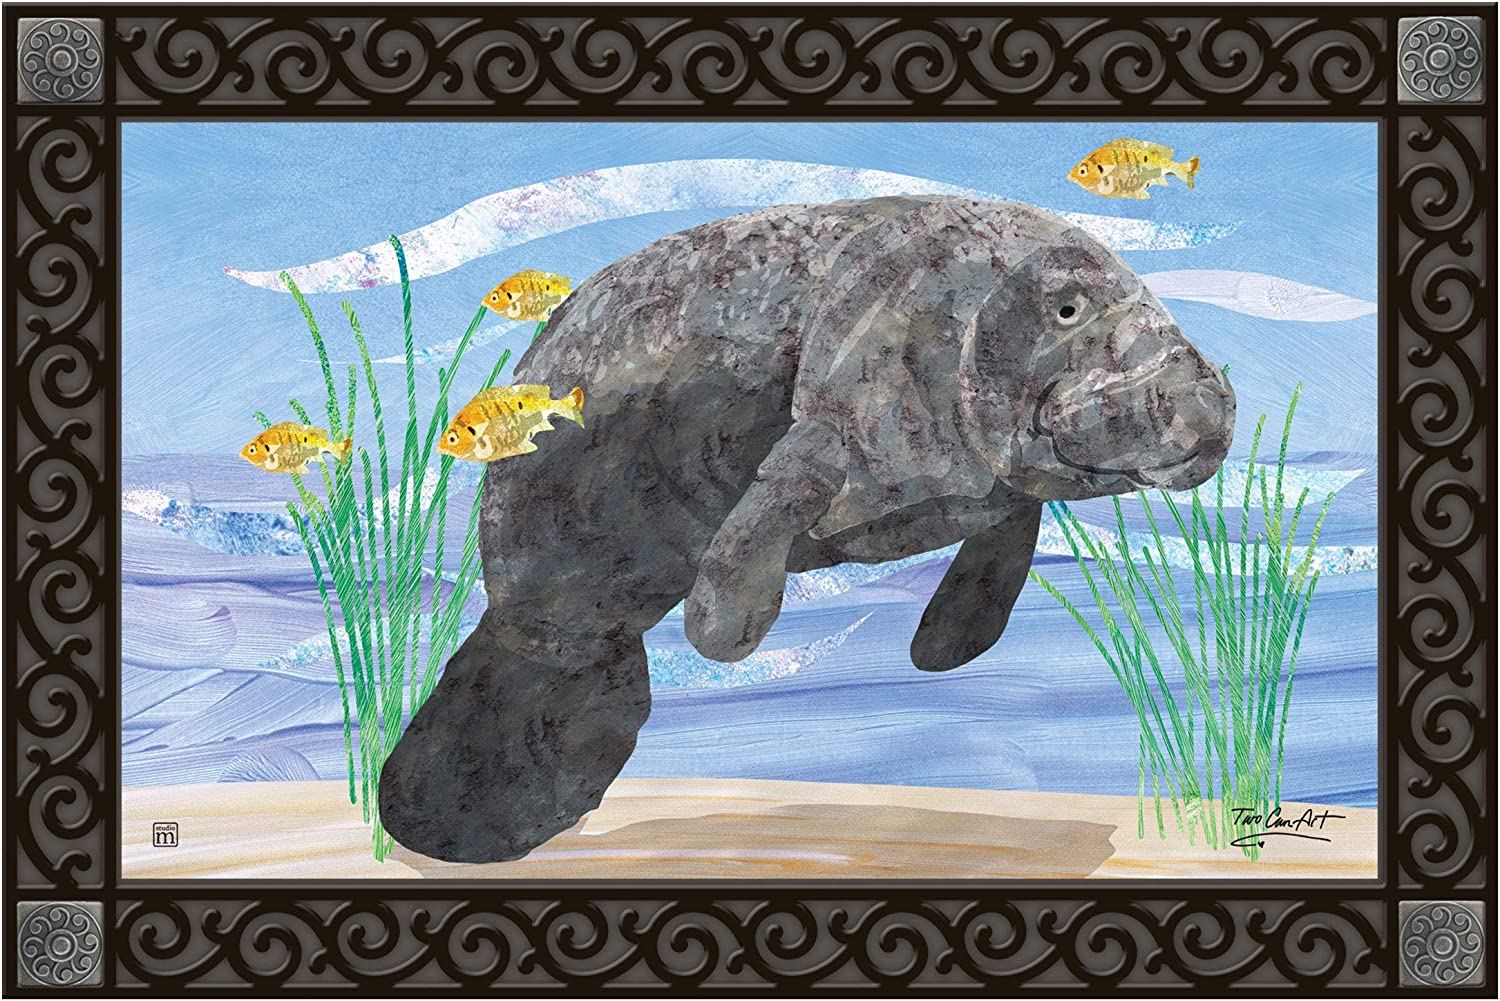 Studio M MatMates Manatee Decorative Floor Mat Indoor or Outdoor Doormat with Eco-Friendly Recycled Rubber Backing, 18 x 30 Inches